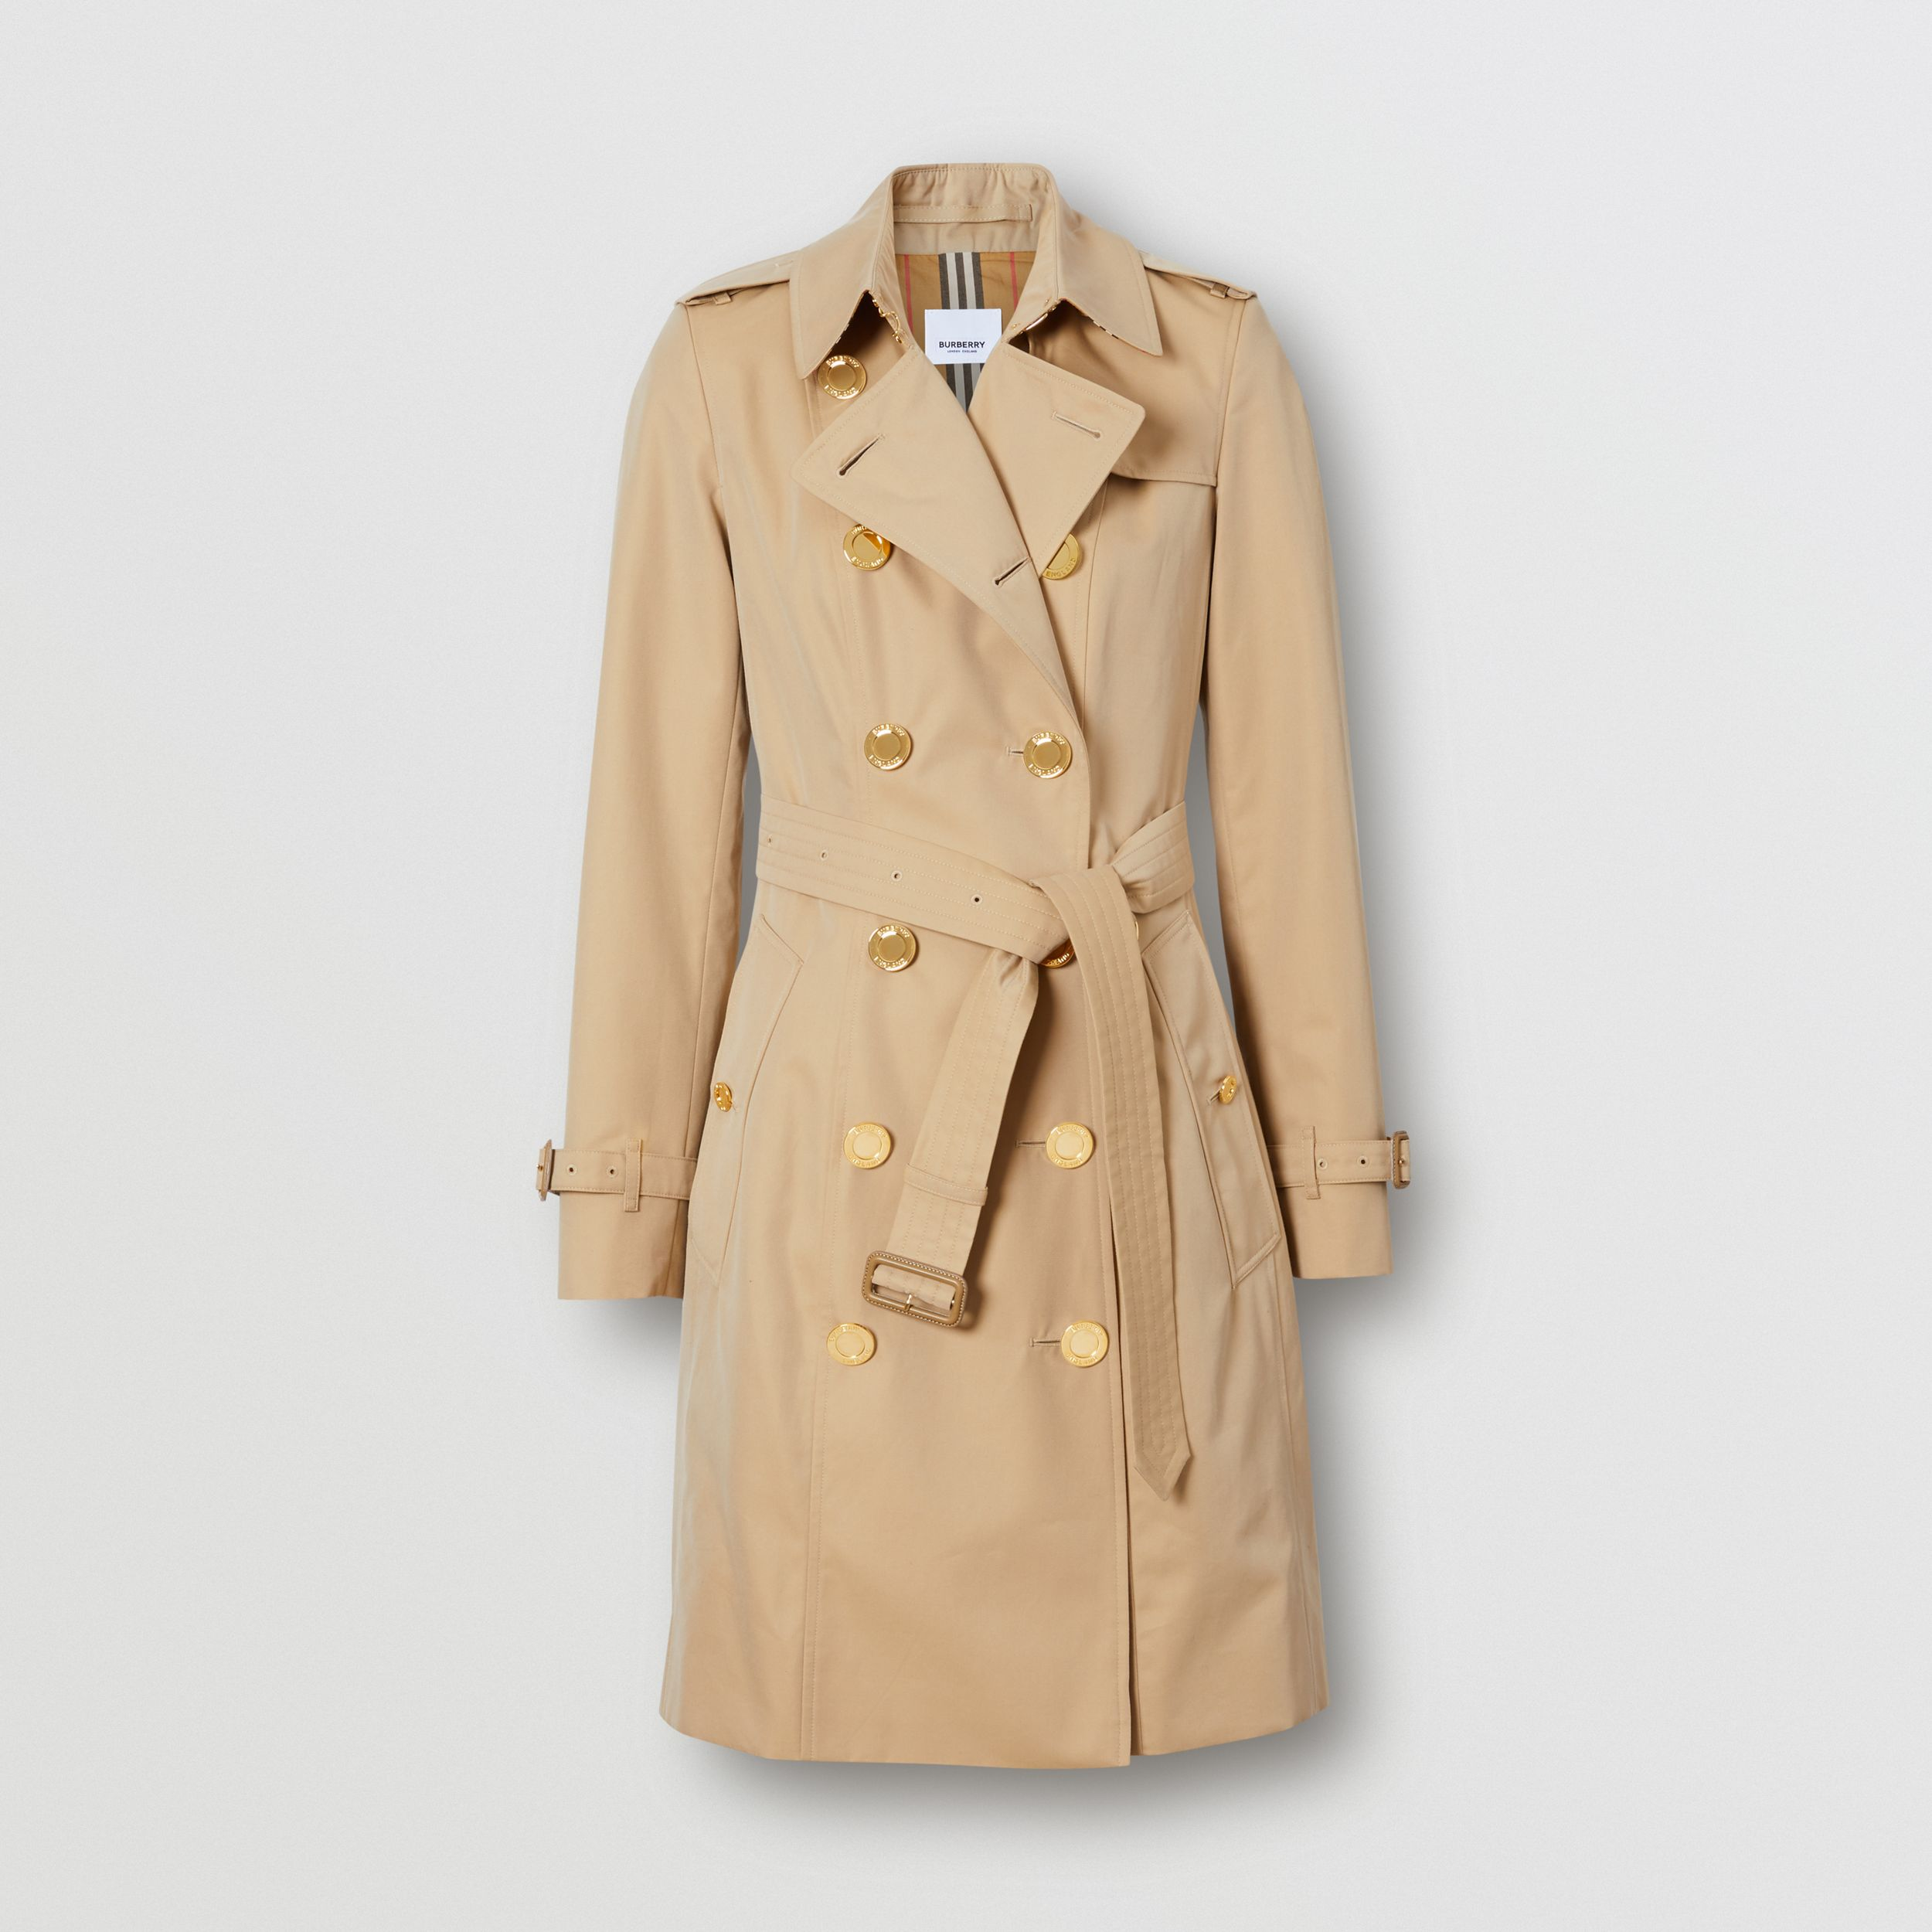 Button Detail Cotton Gabardine Trench Coat in Honey - Women | Burberry - 4